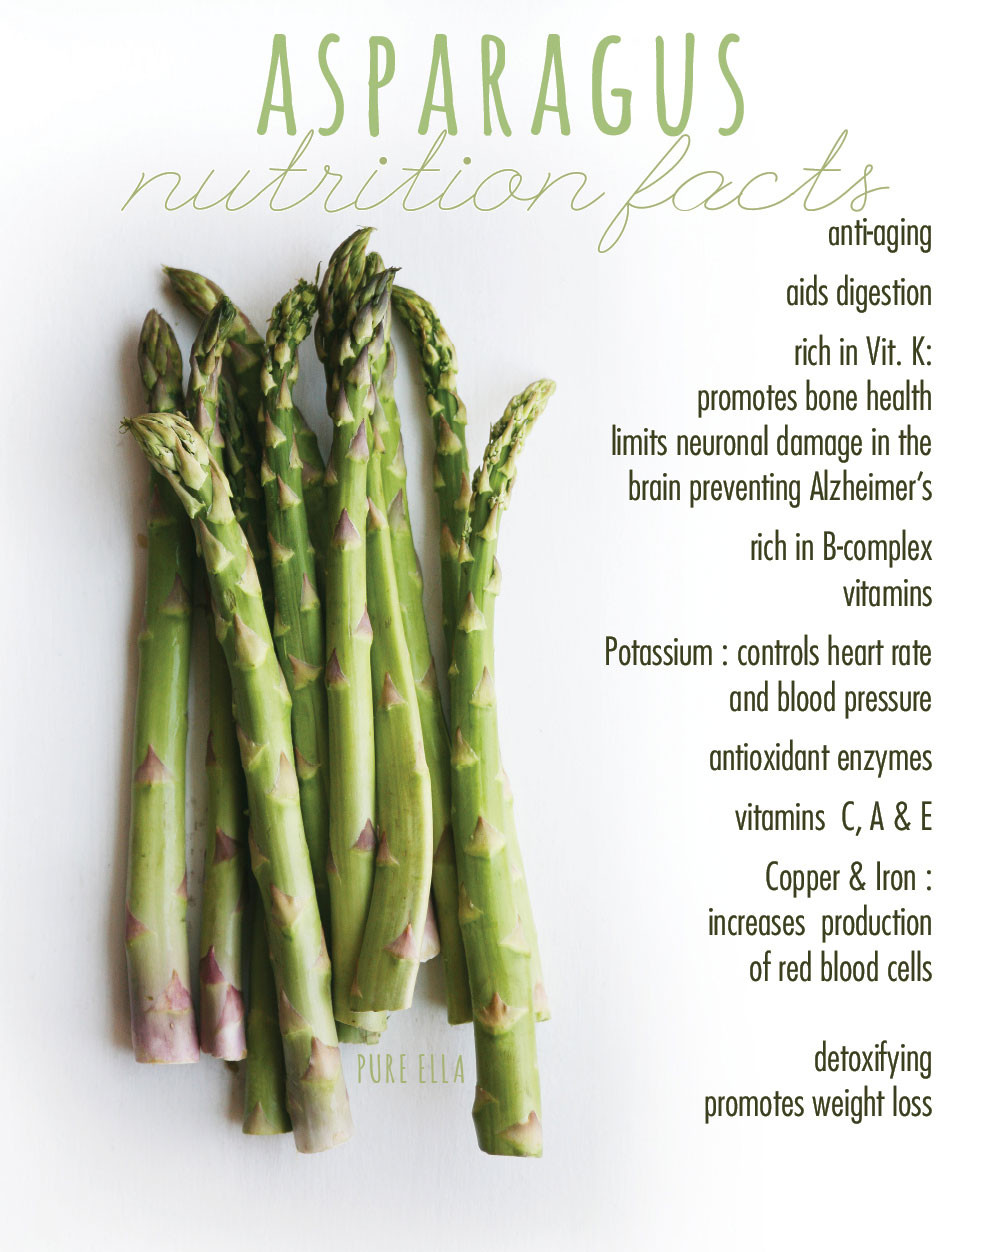 Is Asparagus Healthy  Top 5 Health Benefits of Asparagus